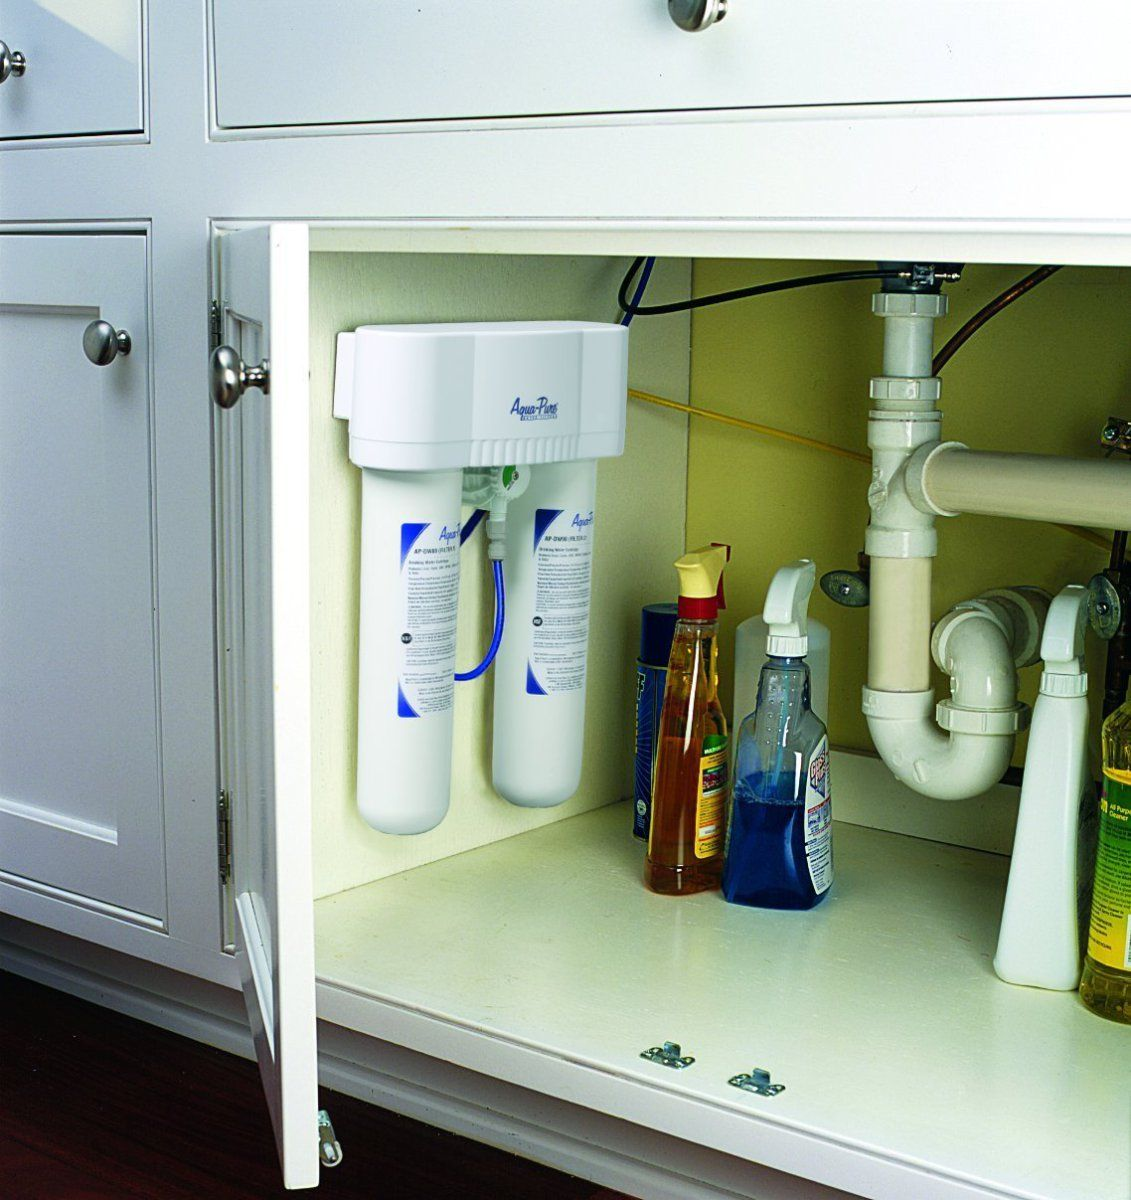 3m Aqua Pure Under Sink Water Filtration System Key Points